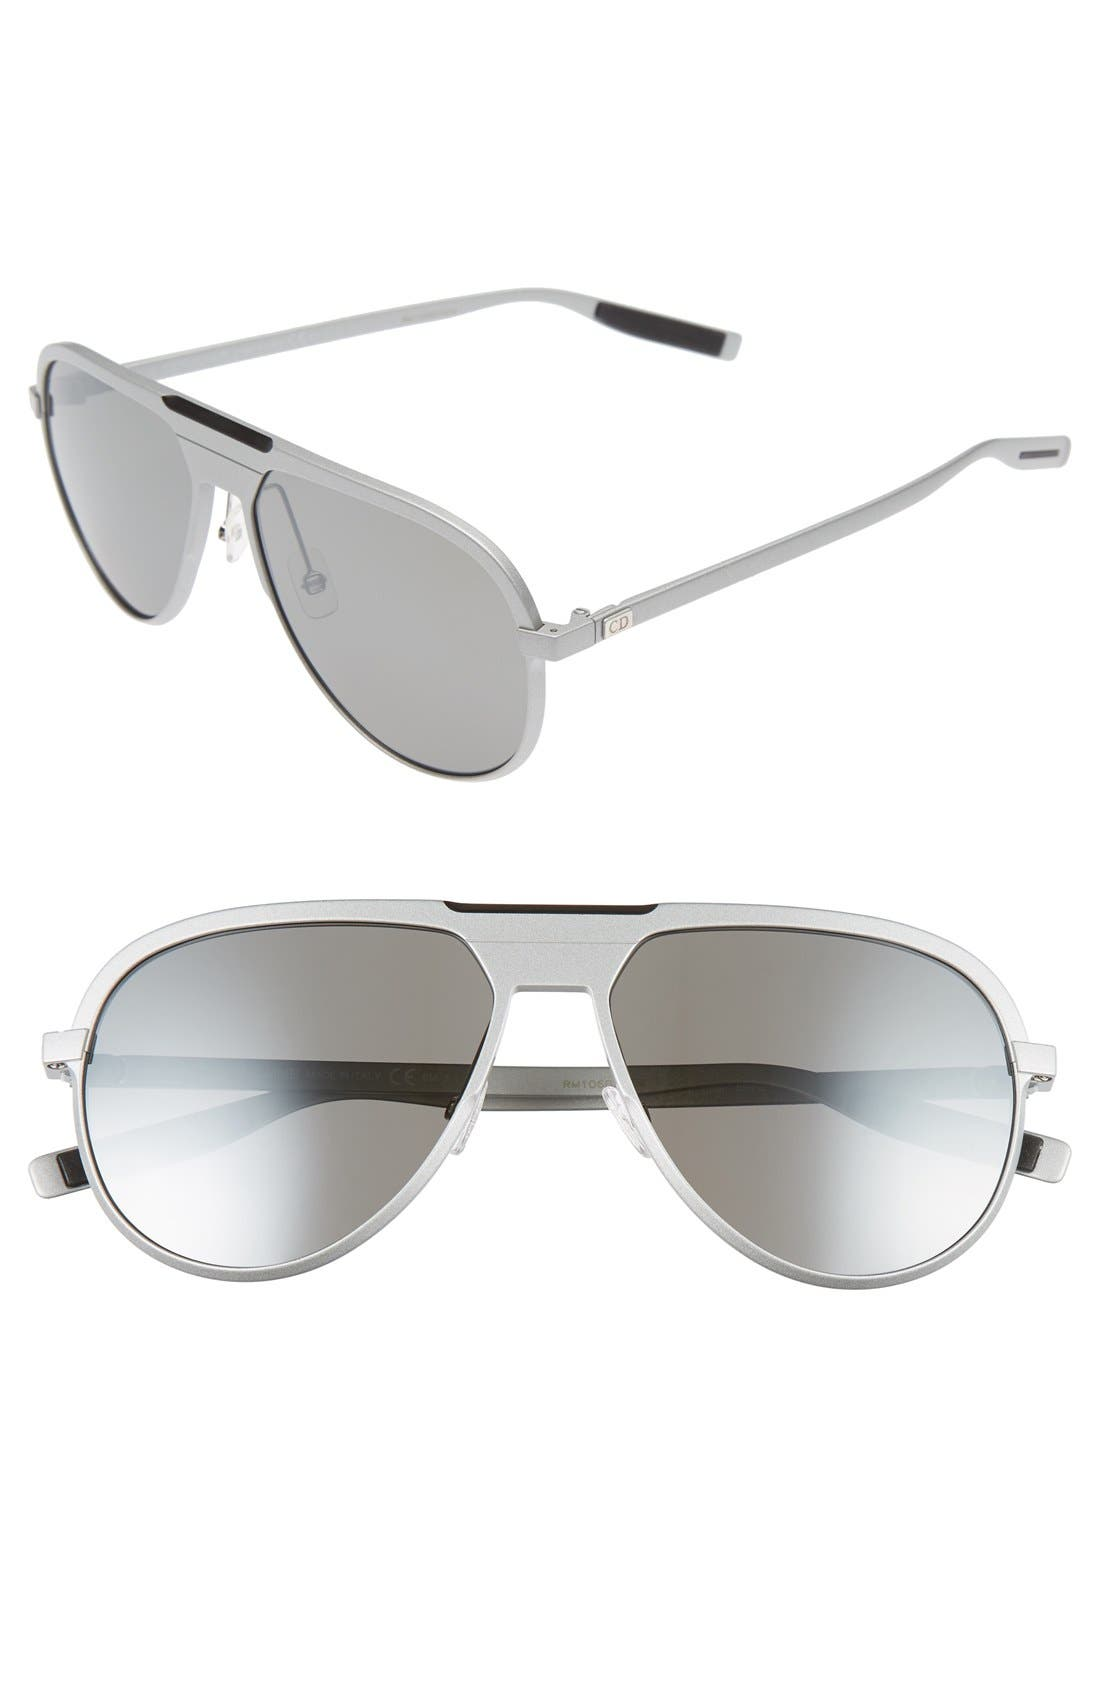 59mm Aviator Sunglasses,                             Main thumbnail 1, color,